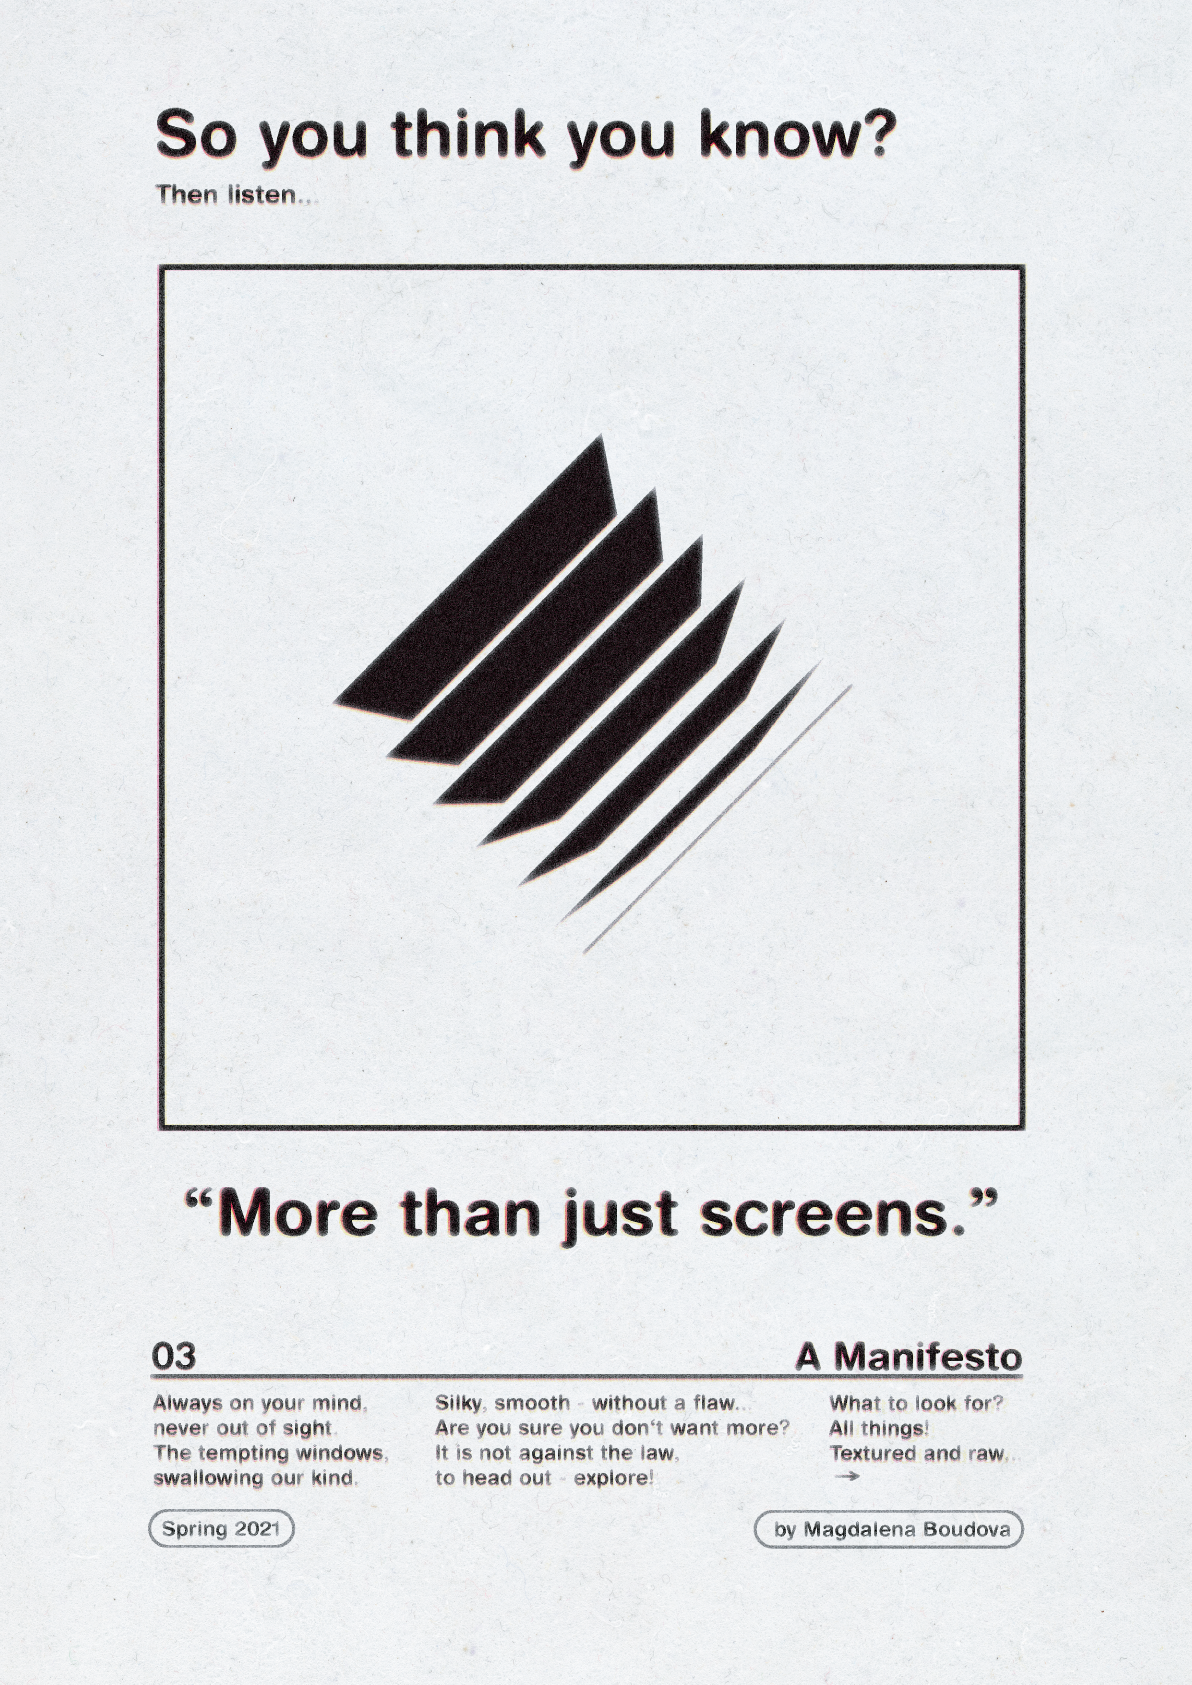 More than just screens.